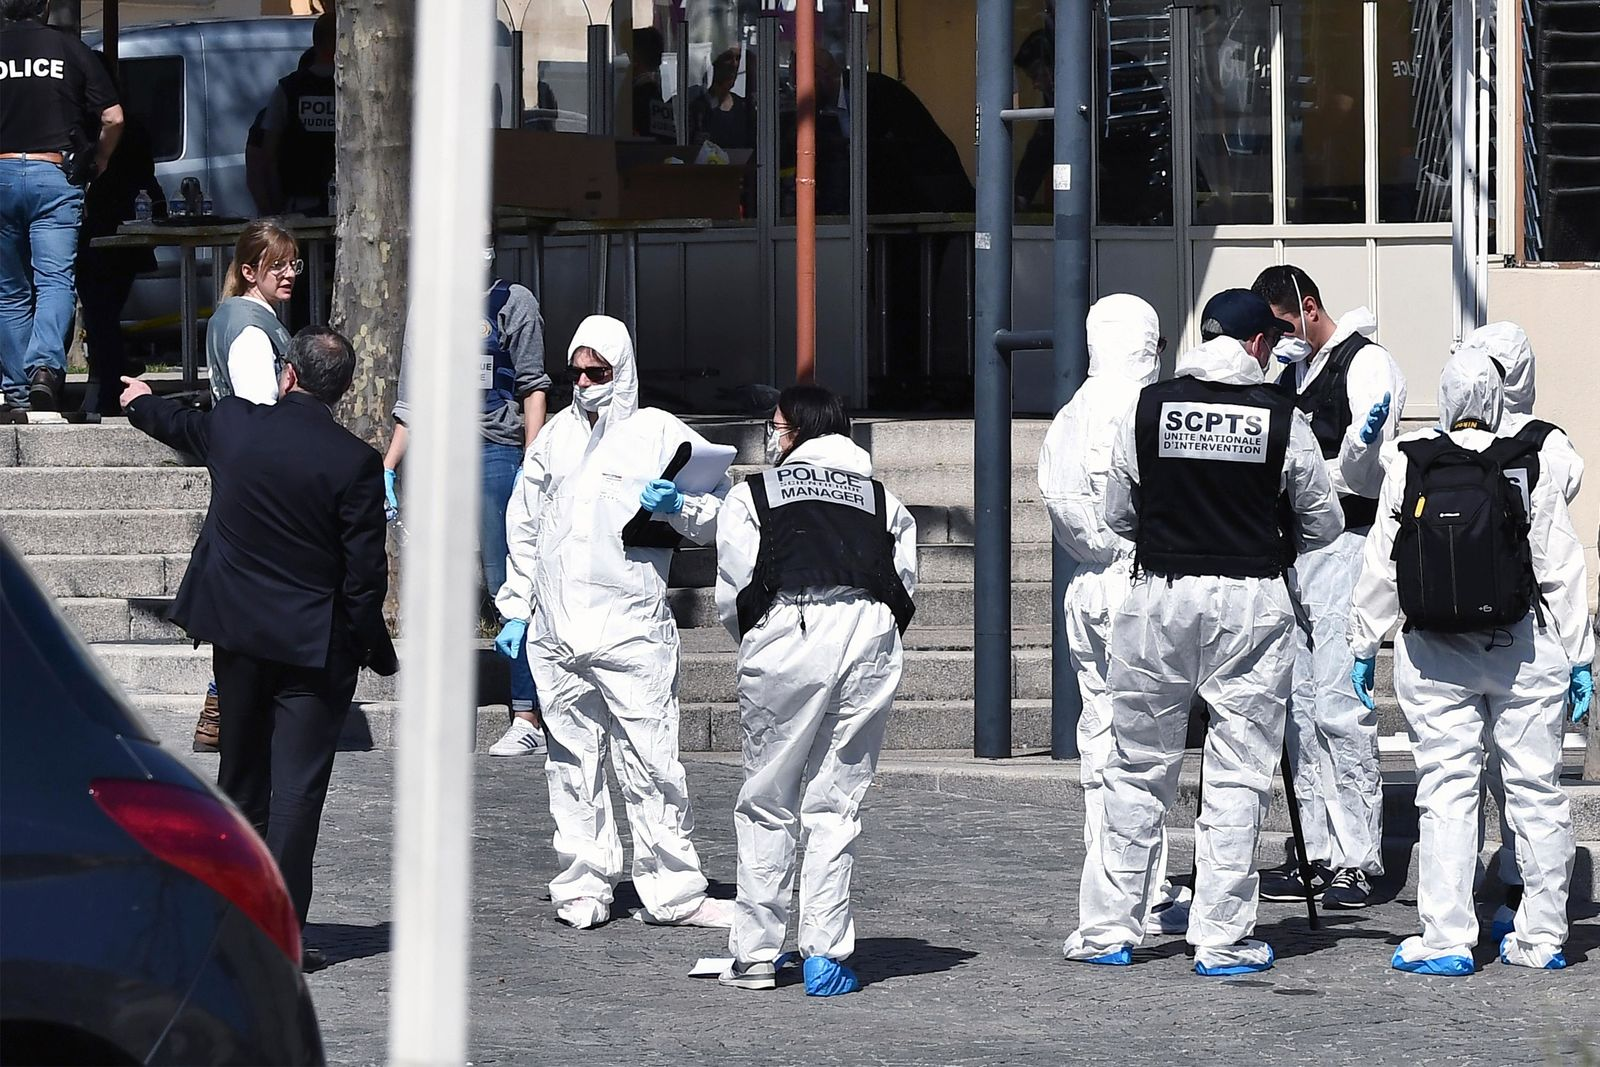 Police officers investigate after a man wielding a knife attacked residents venturing out to shop in the town under lockdown, Saturday April 4, 2020 in Romans-sur-Isere, southern France. (AP Photo)